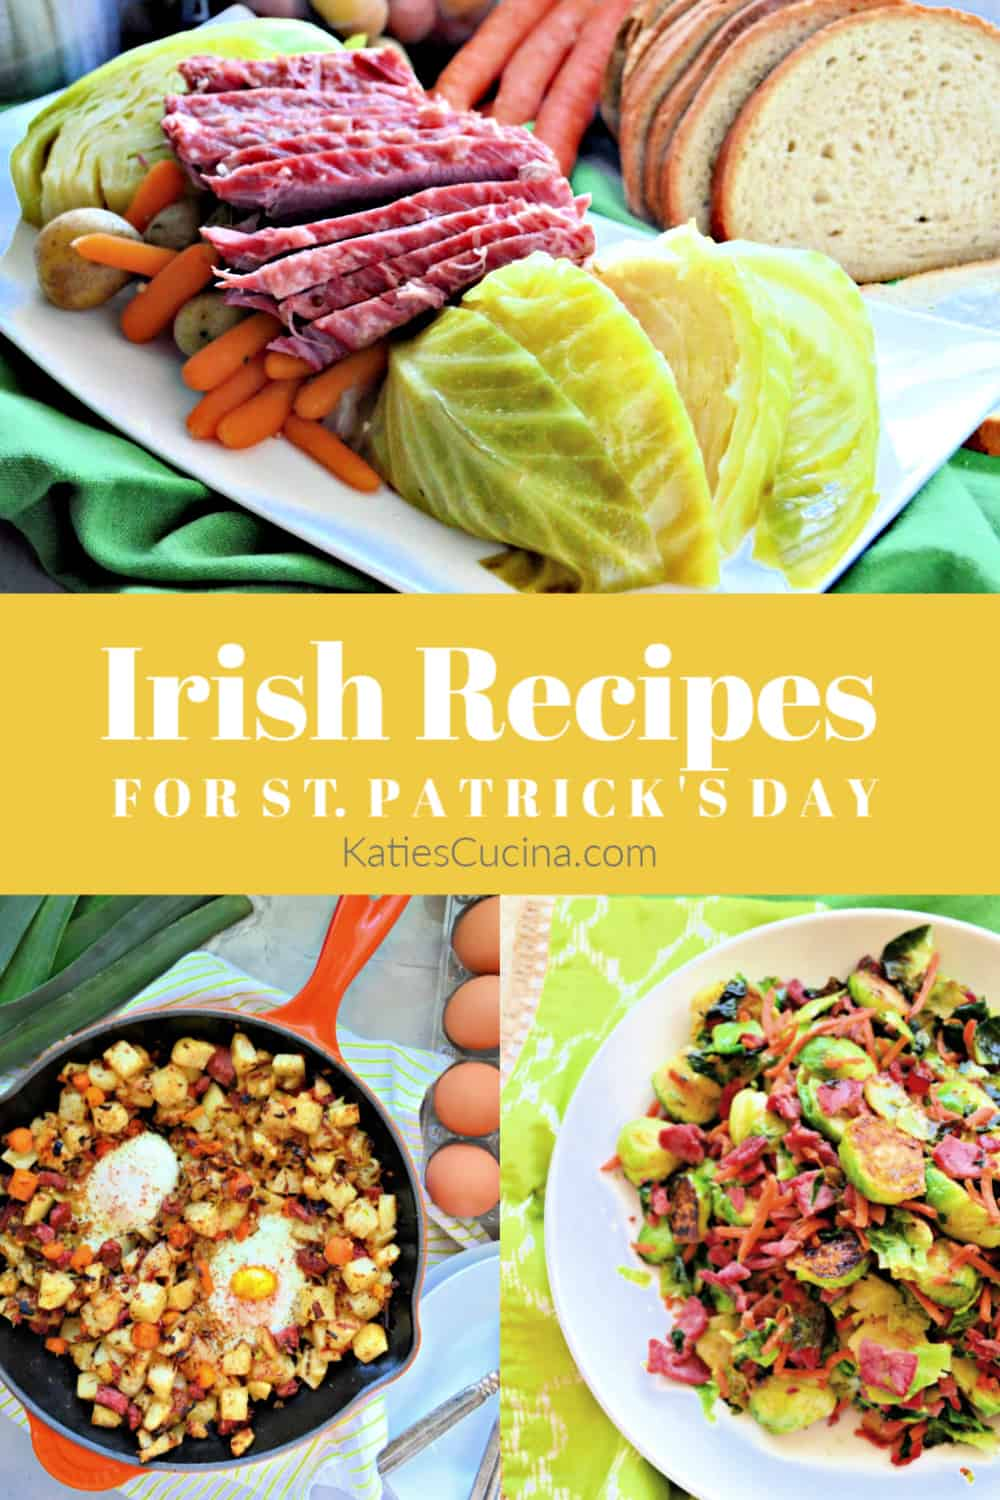 50 Irish Recipes for St. Patrick's Day photo collage